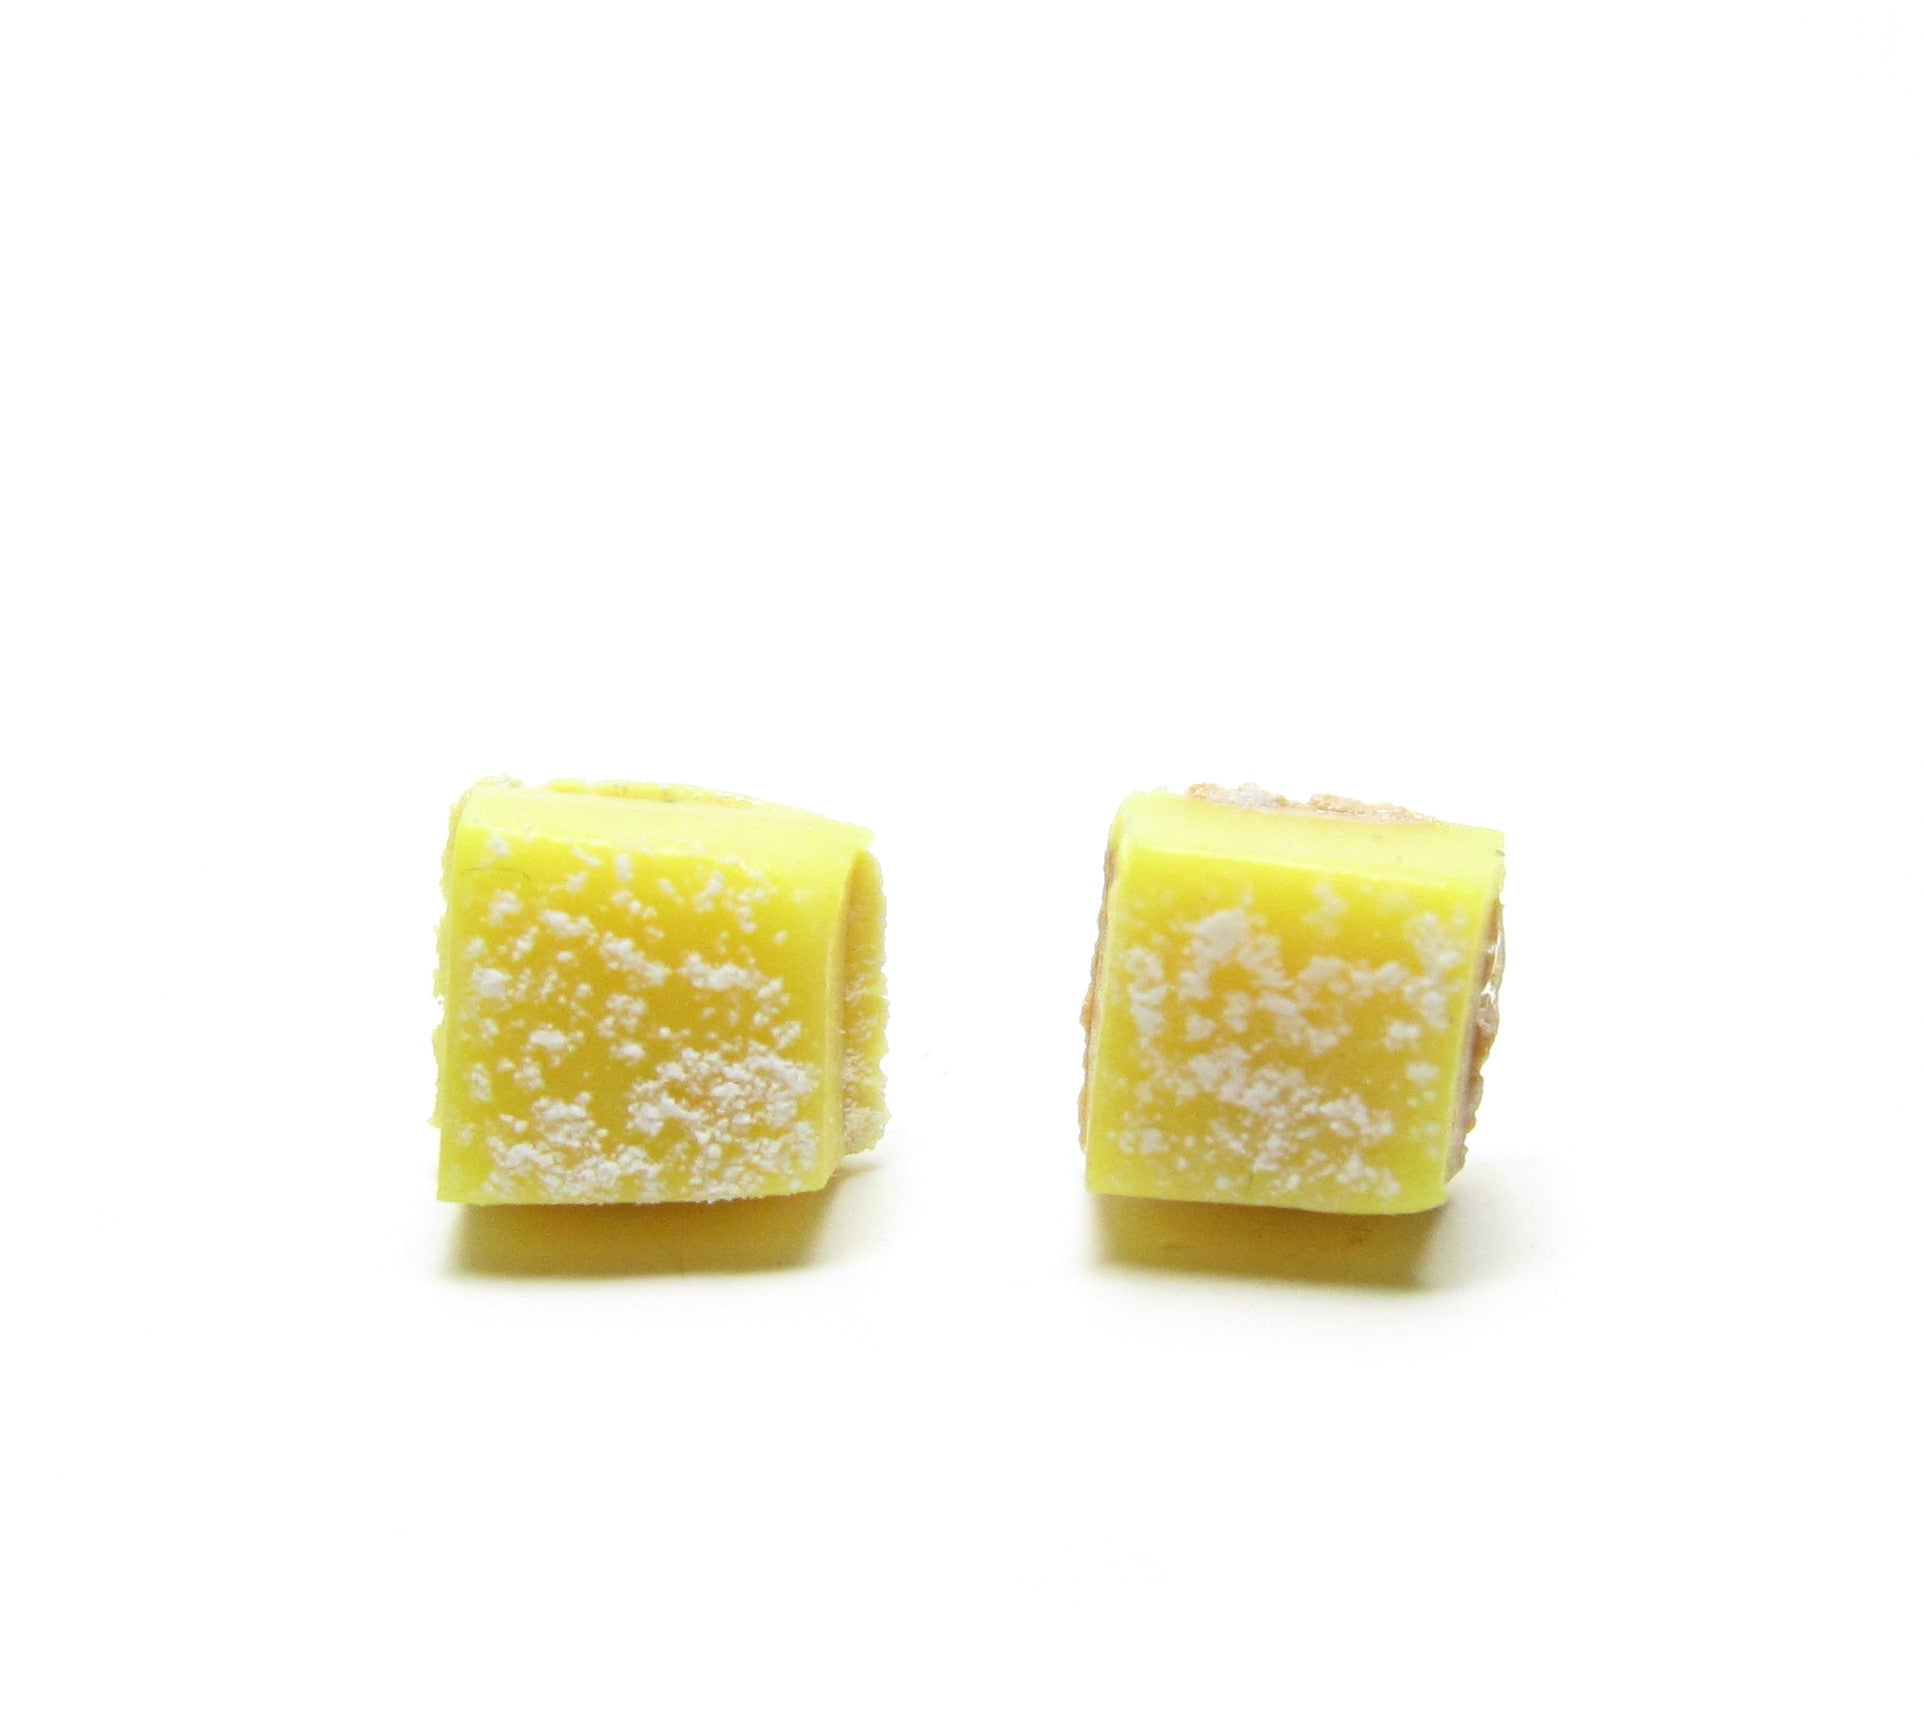 Lemon bar tart post earrings